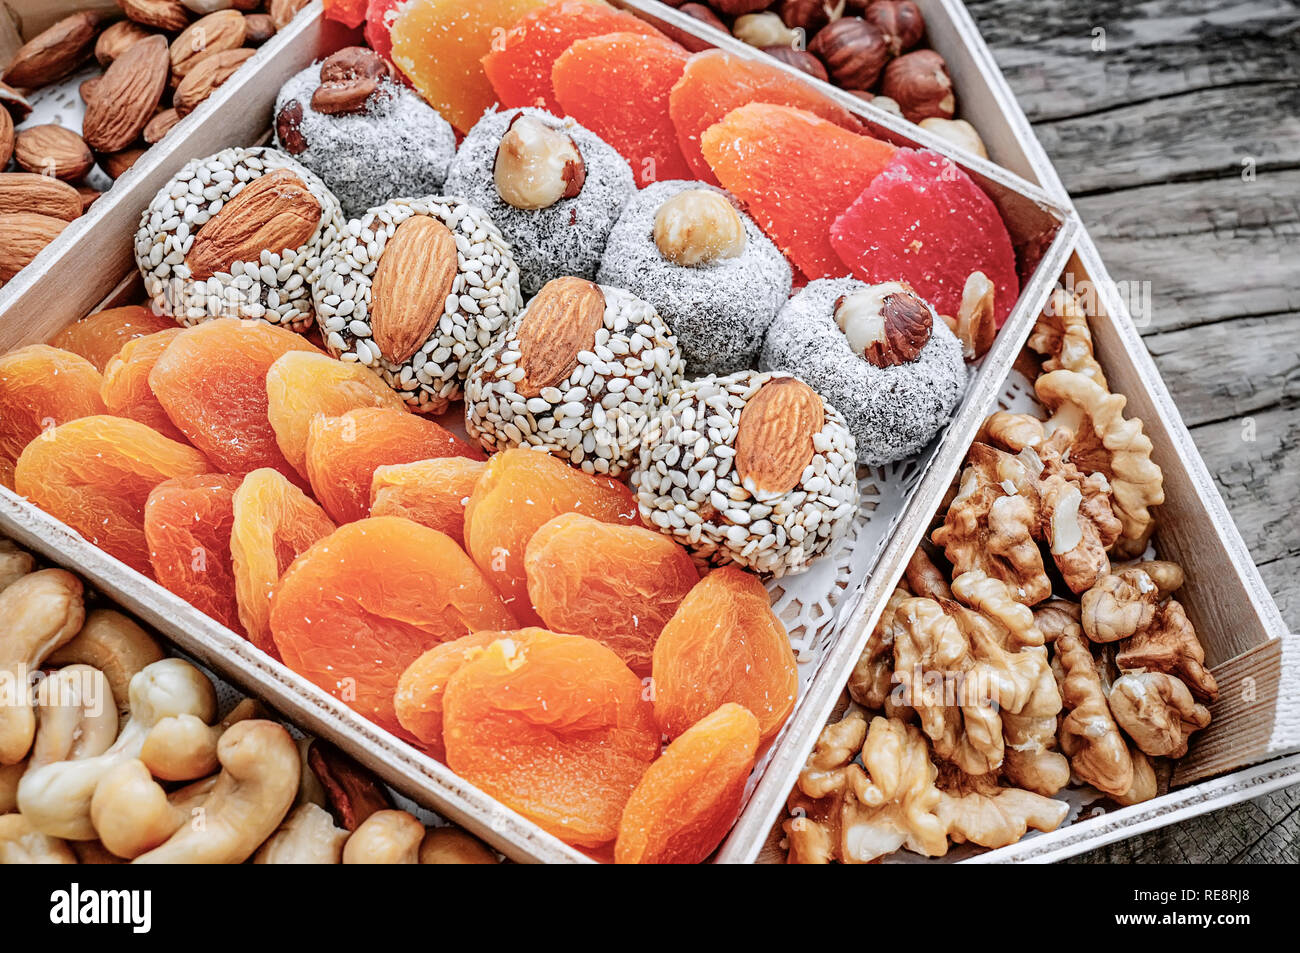 Turkish delight oriental sweets dried fruits and nuts in a wooden box. Background. Healthy vegan food. Natural food. Selective focus. Stock Photo